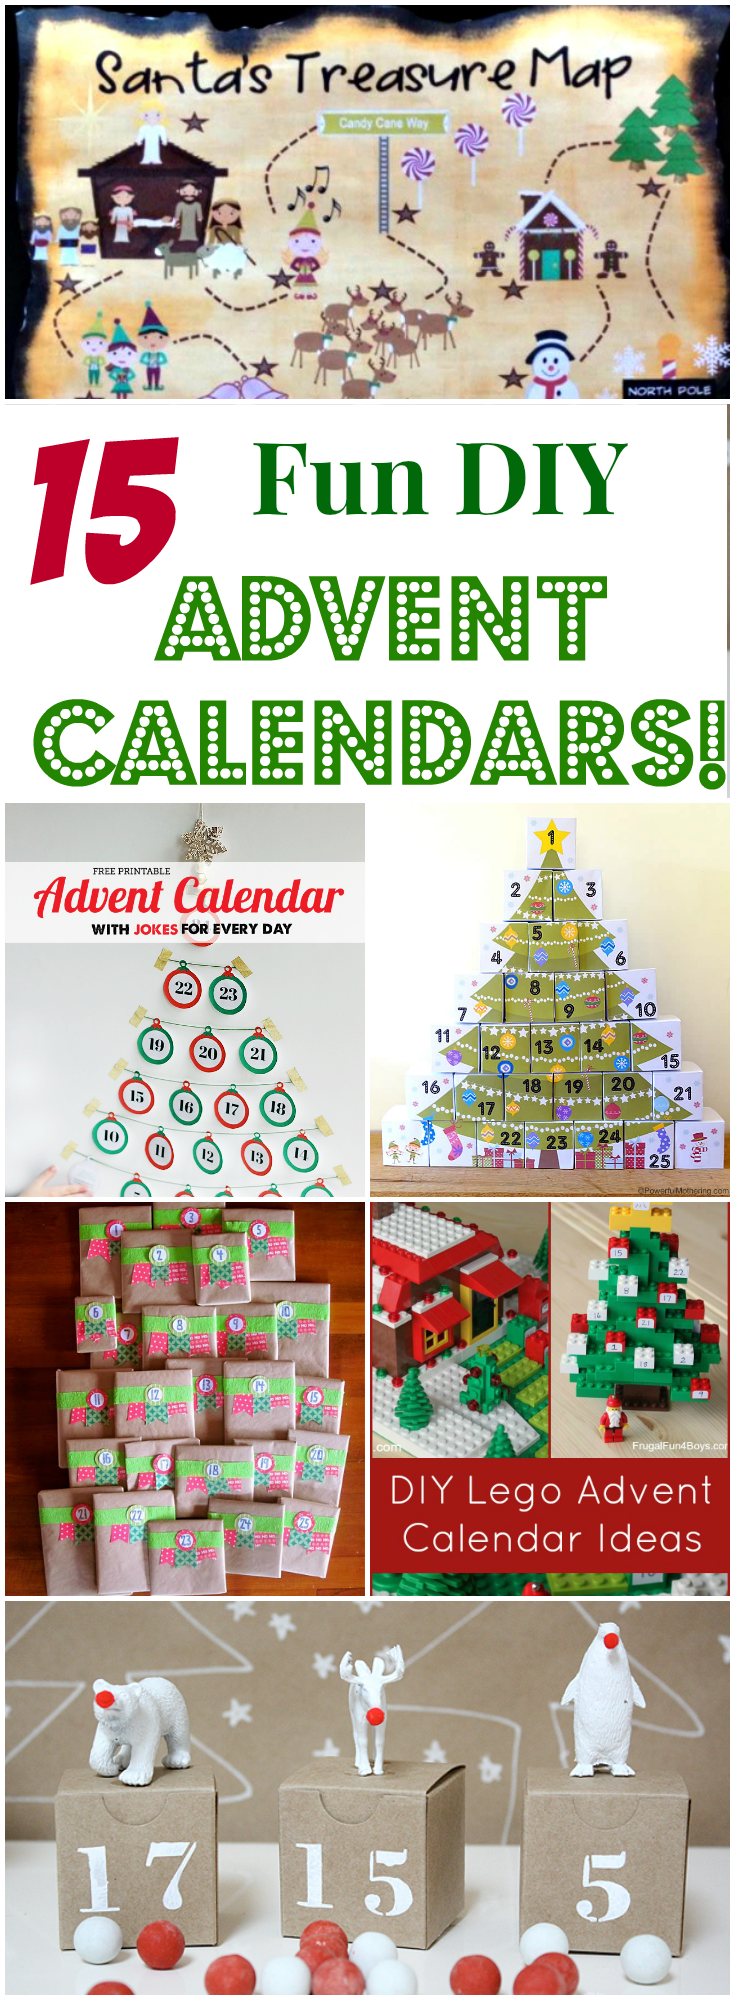 15 Fun DIY Advent Calendars for Kids